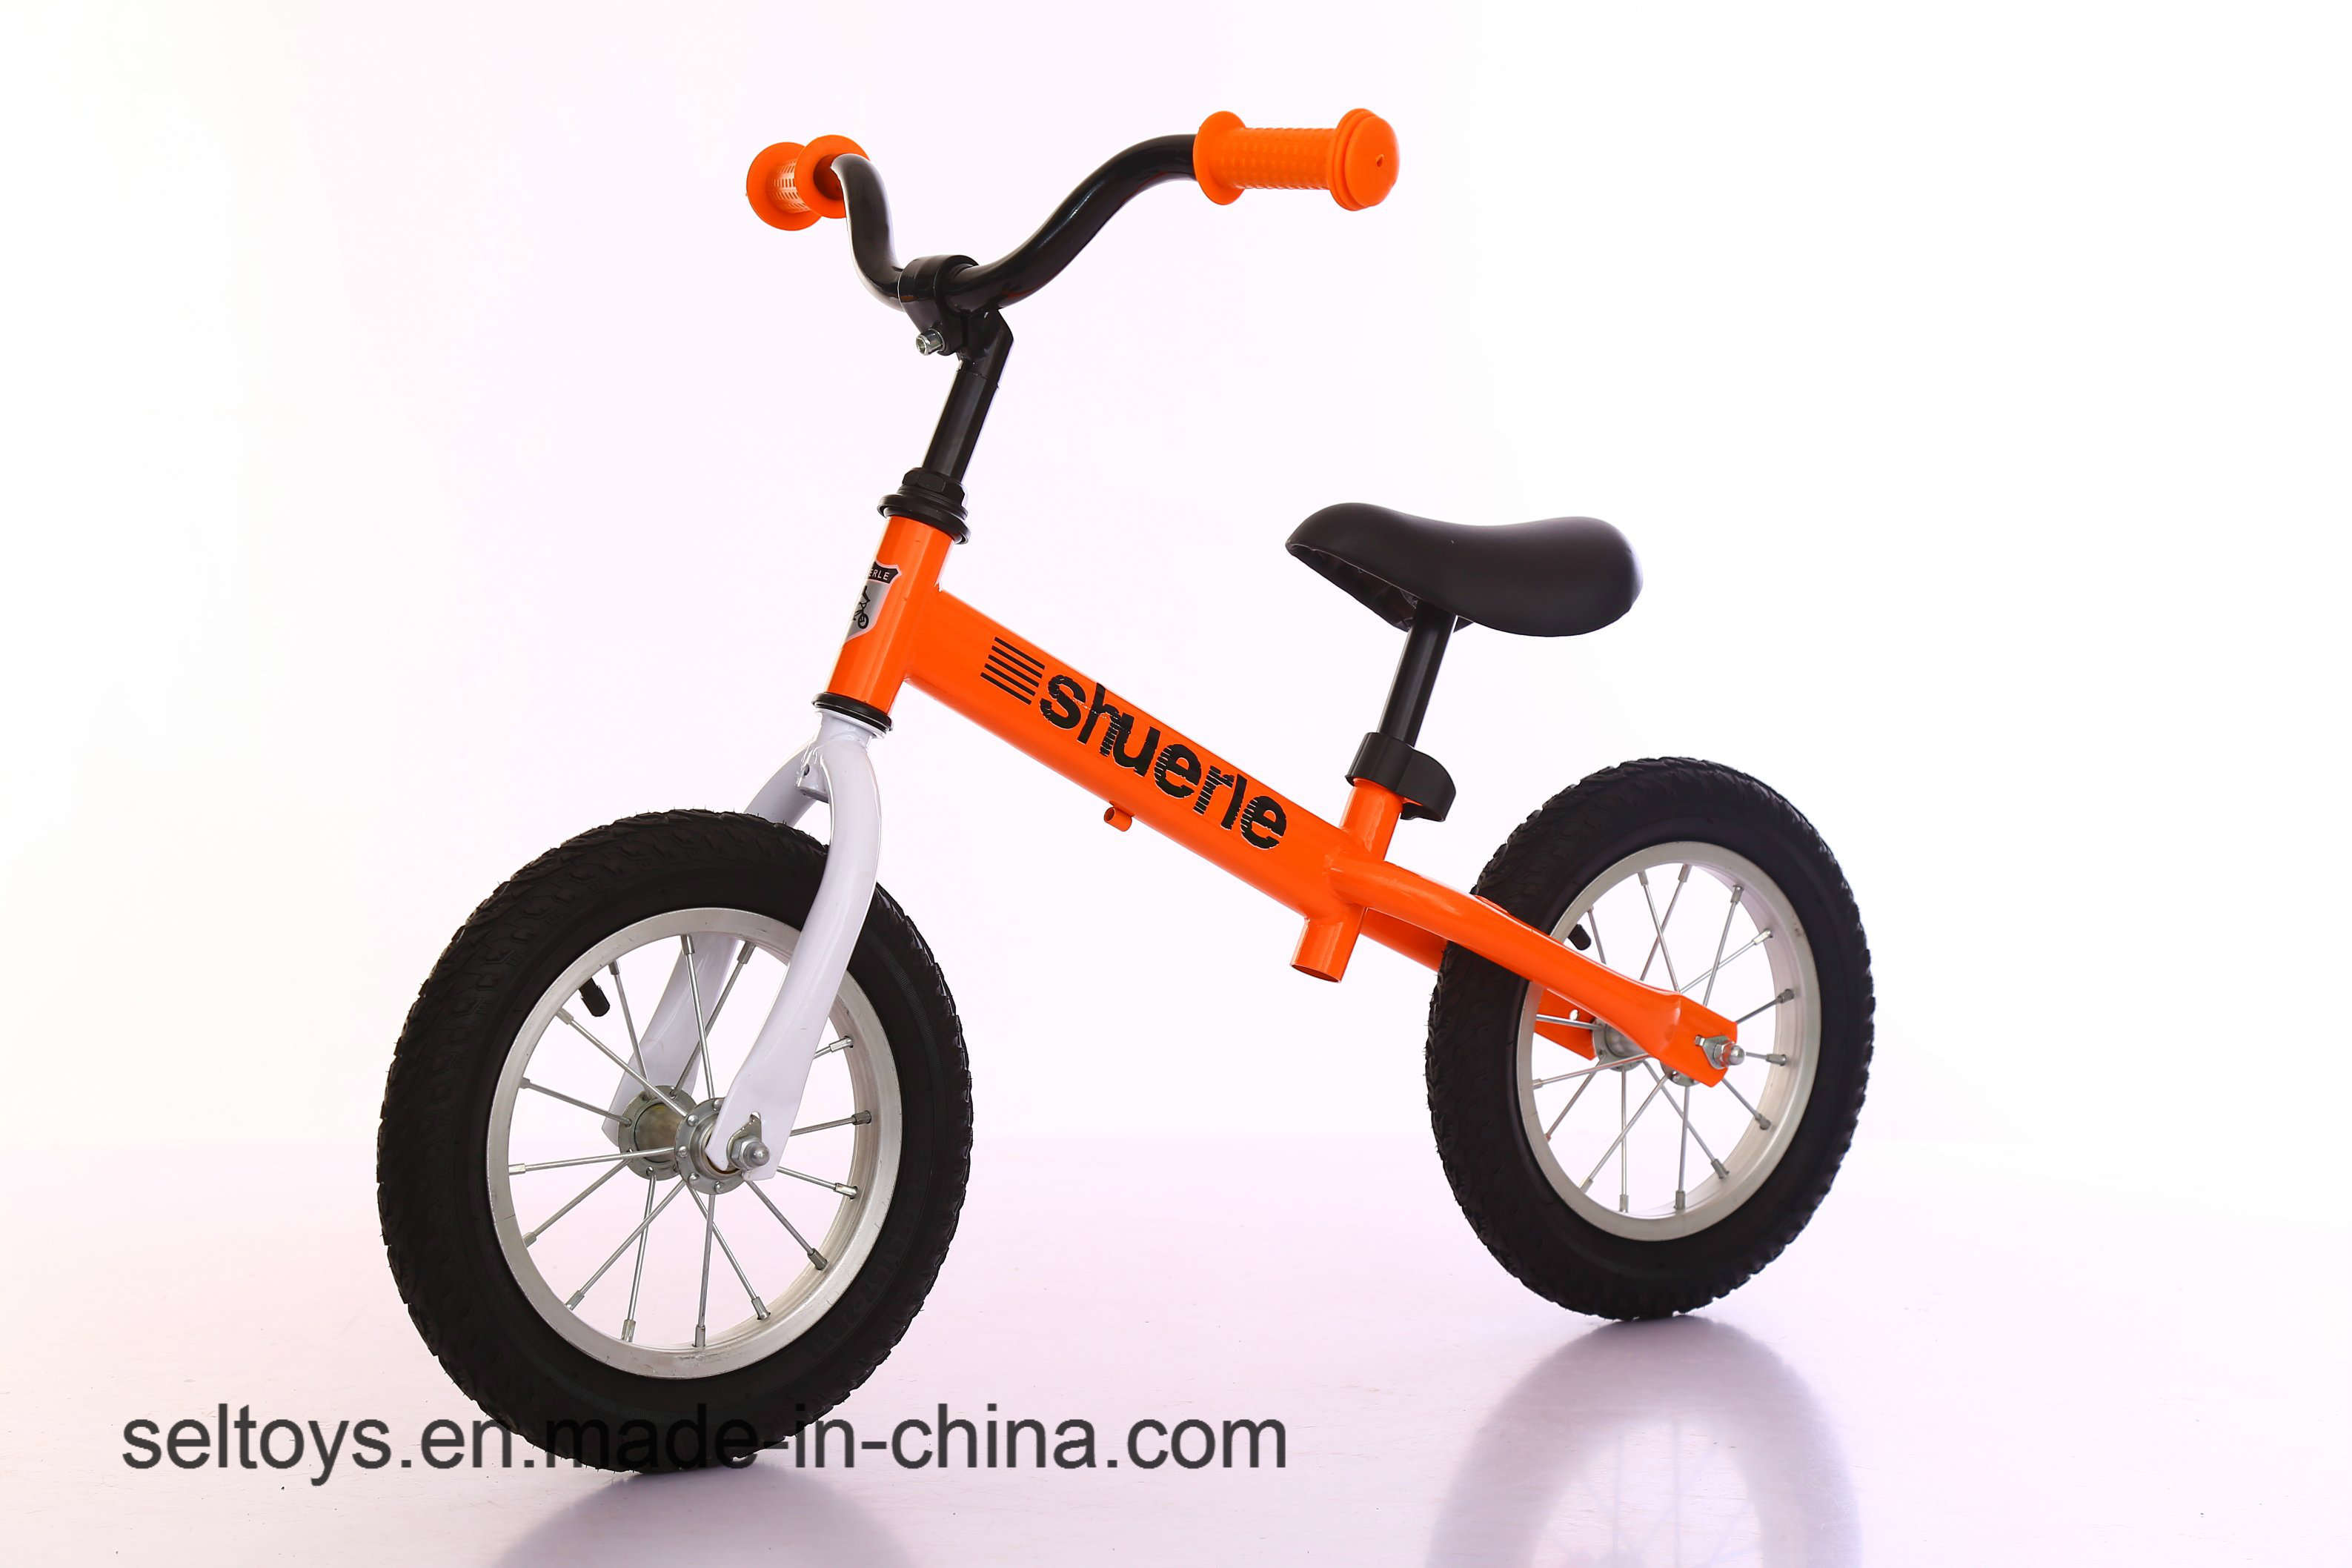 China Mini Toy Bike, Mini Toy Bike Manufacturers, Suppliers | Made ...